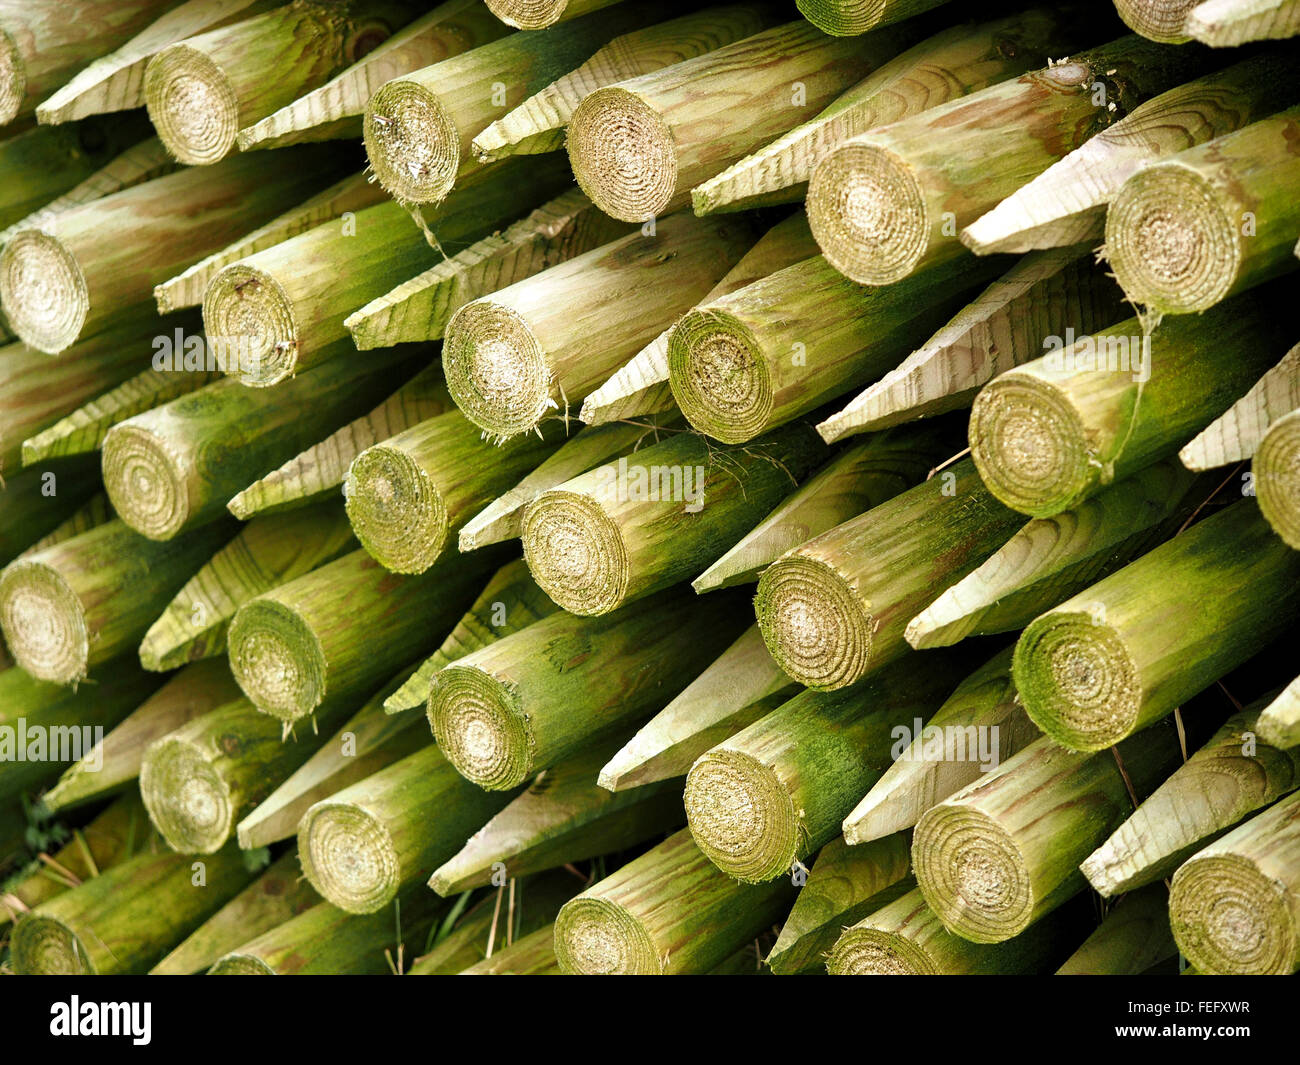 pattern of wooden fenceposts stacked end to end with green mossy tinge of lichenStock Photo